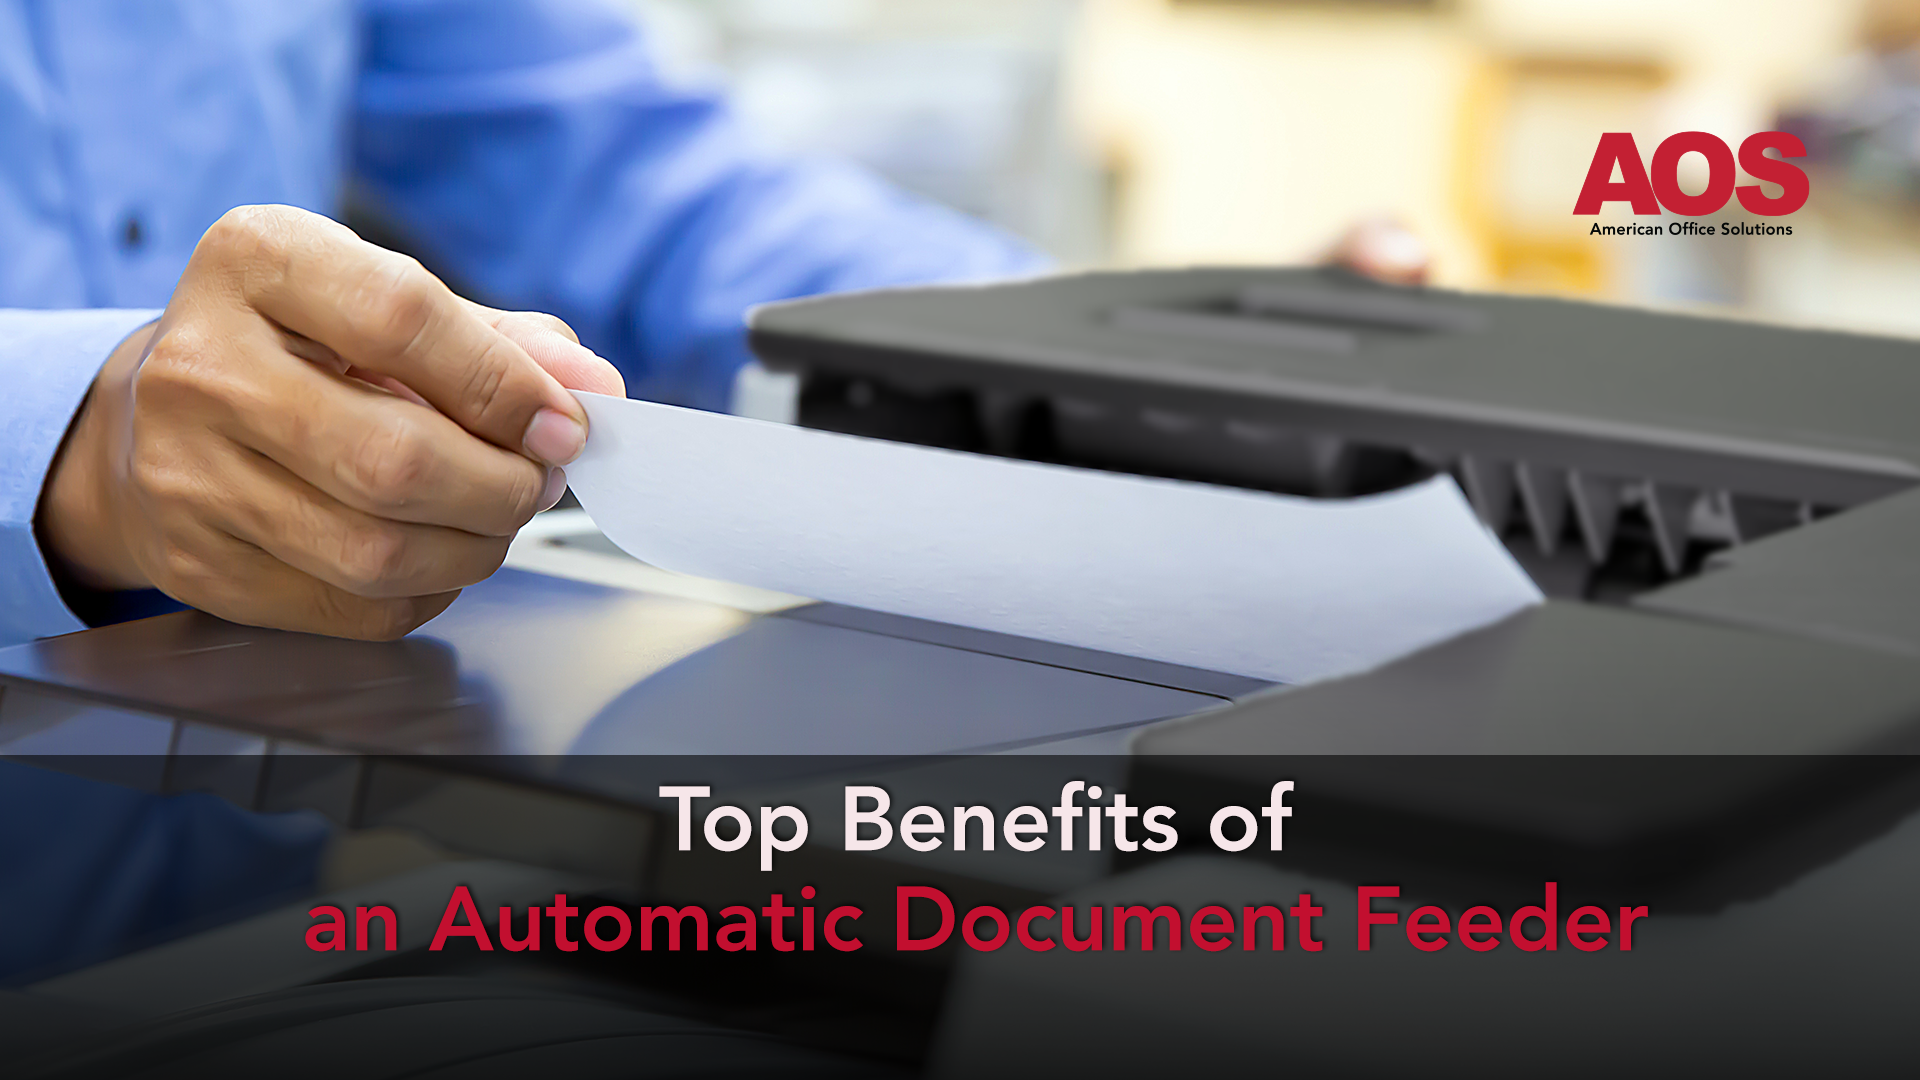 Top Benefits of an Automatic Document Feeder